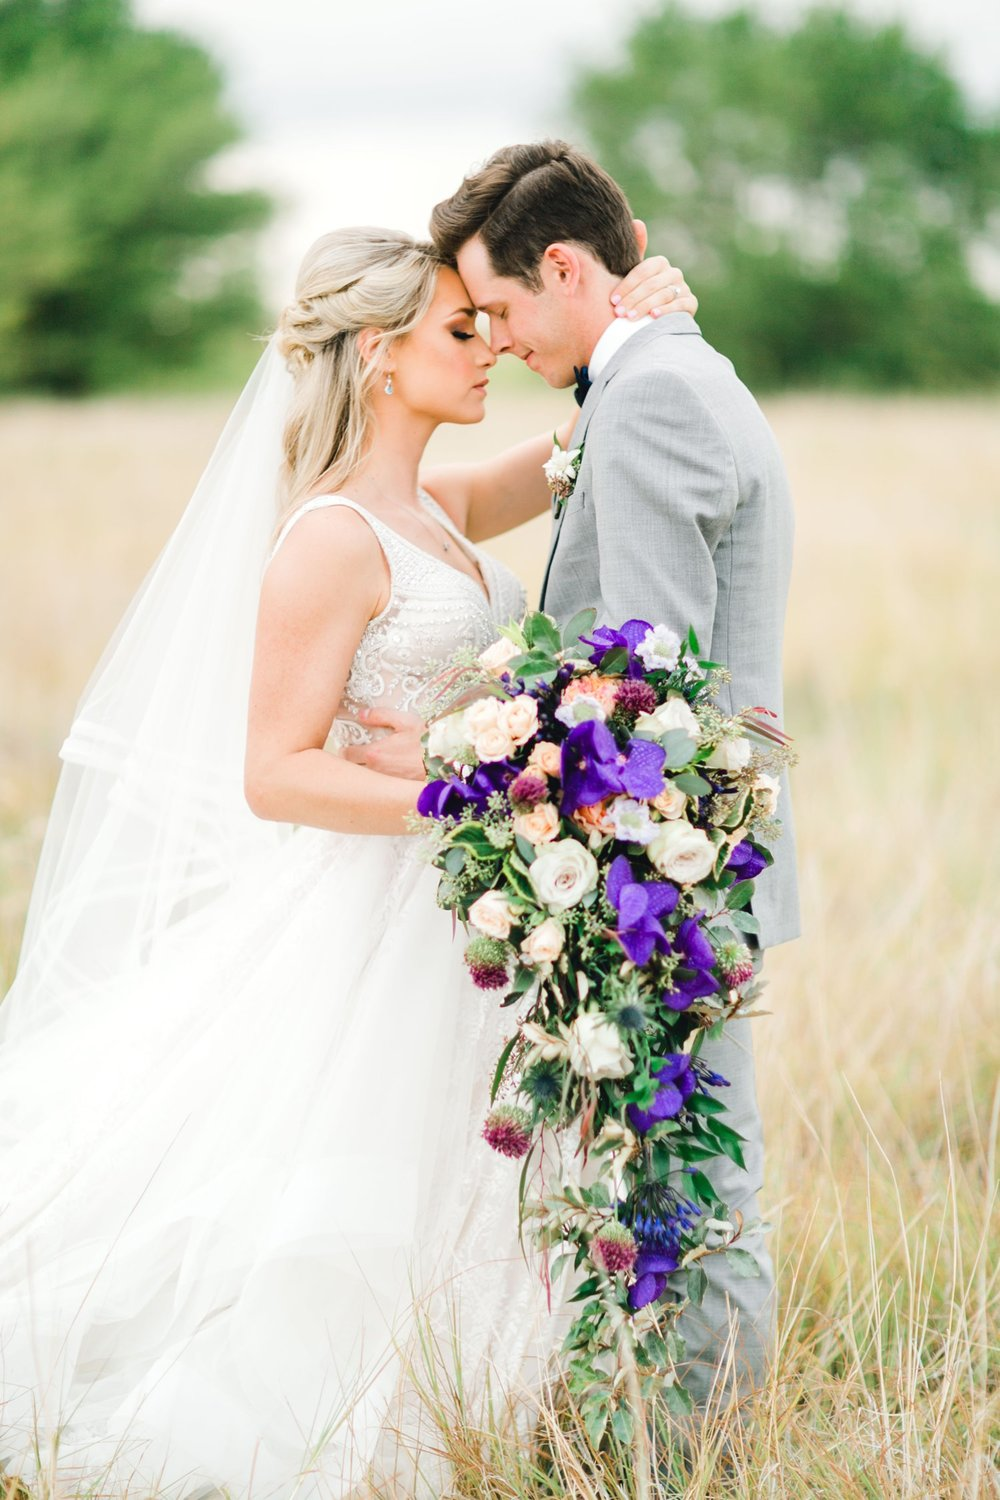 KAITLYN_AND_ZACHARY_HUNT_ALLEEJ_LUBBOCK_WEDDING_PHOTOGRAPHER_EBERLEY_BROOKS_EVENTS_0138.jpg